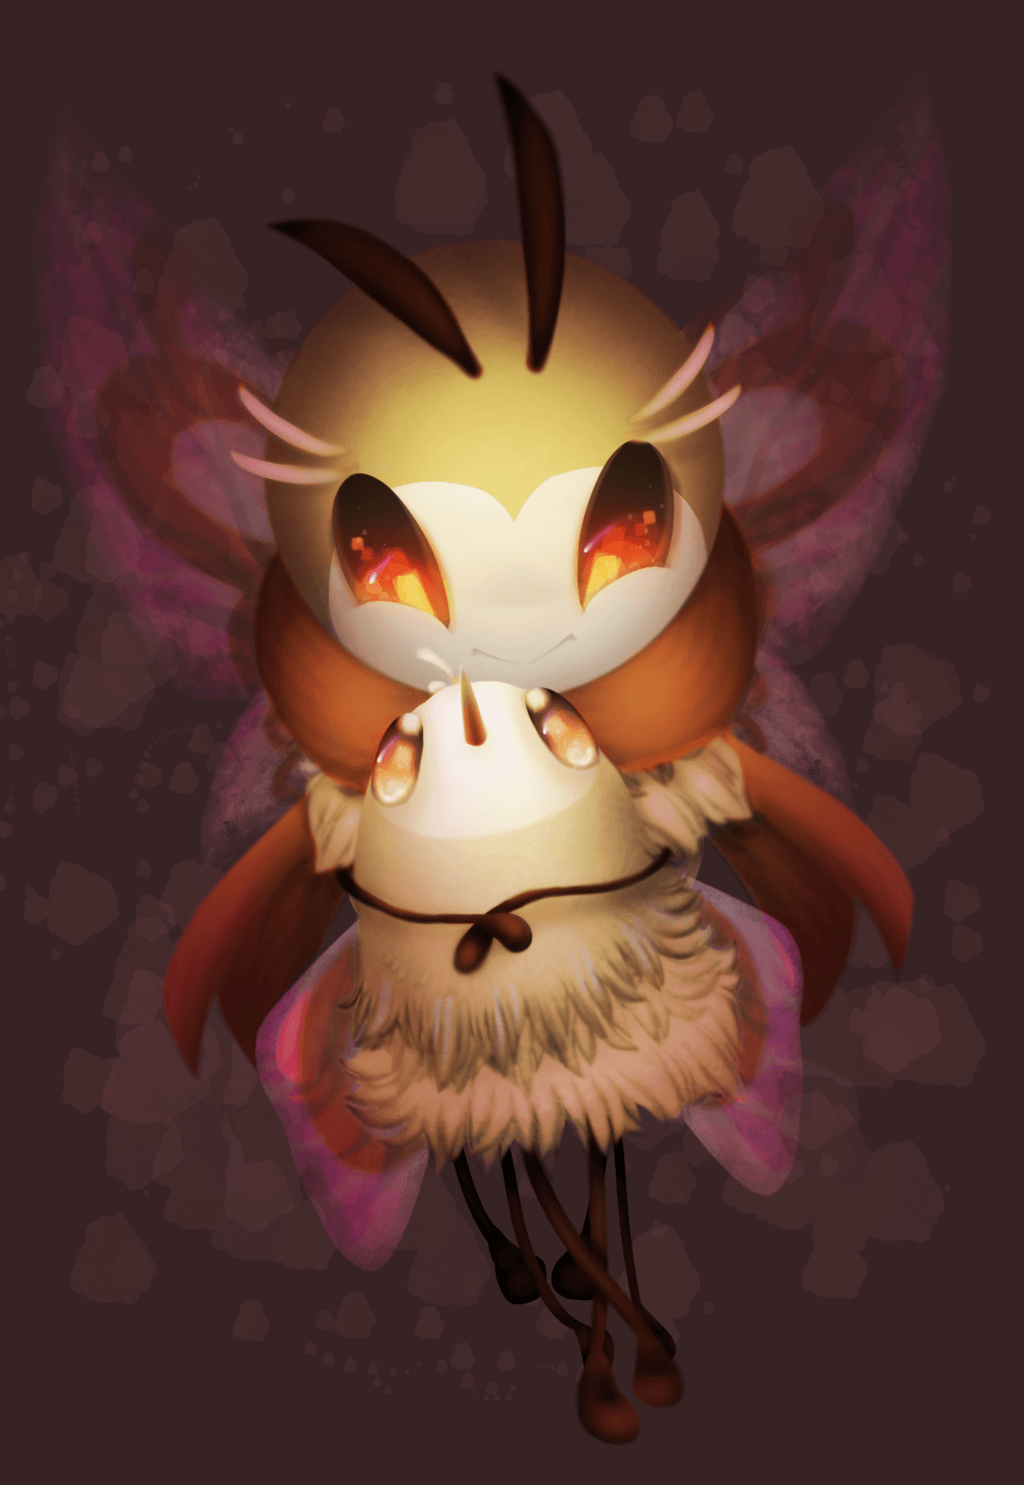 Cutiefly and Ribombee by y0waifu on DeviantArt